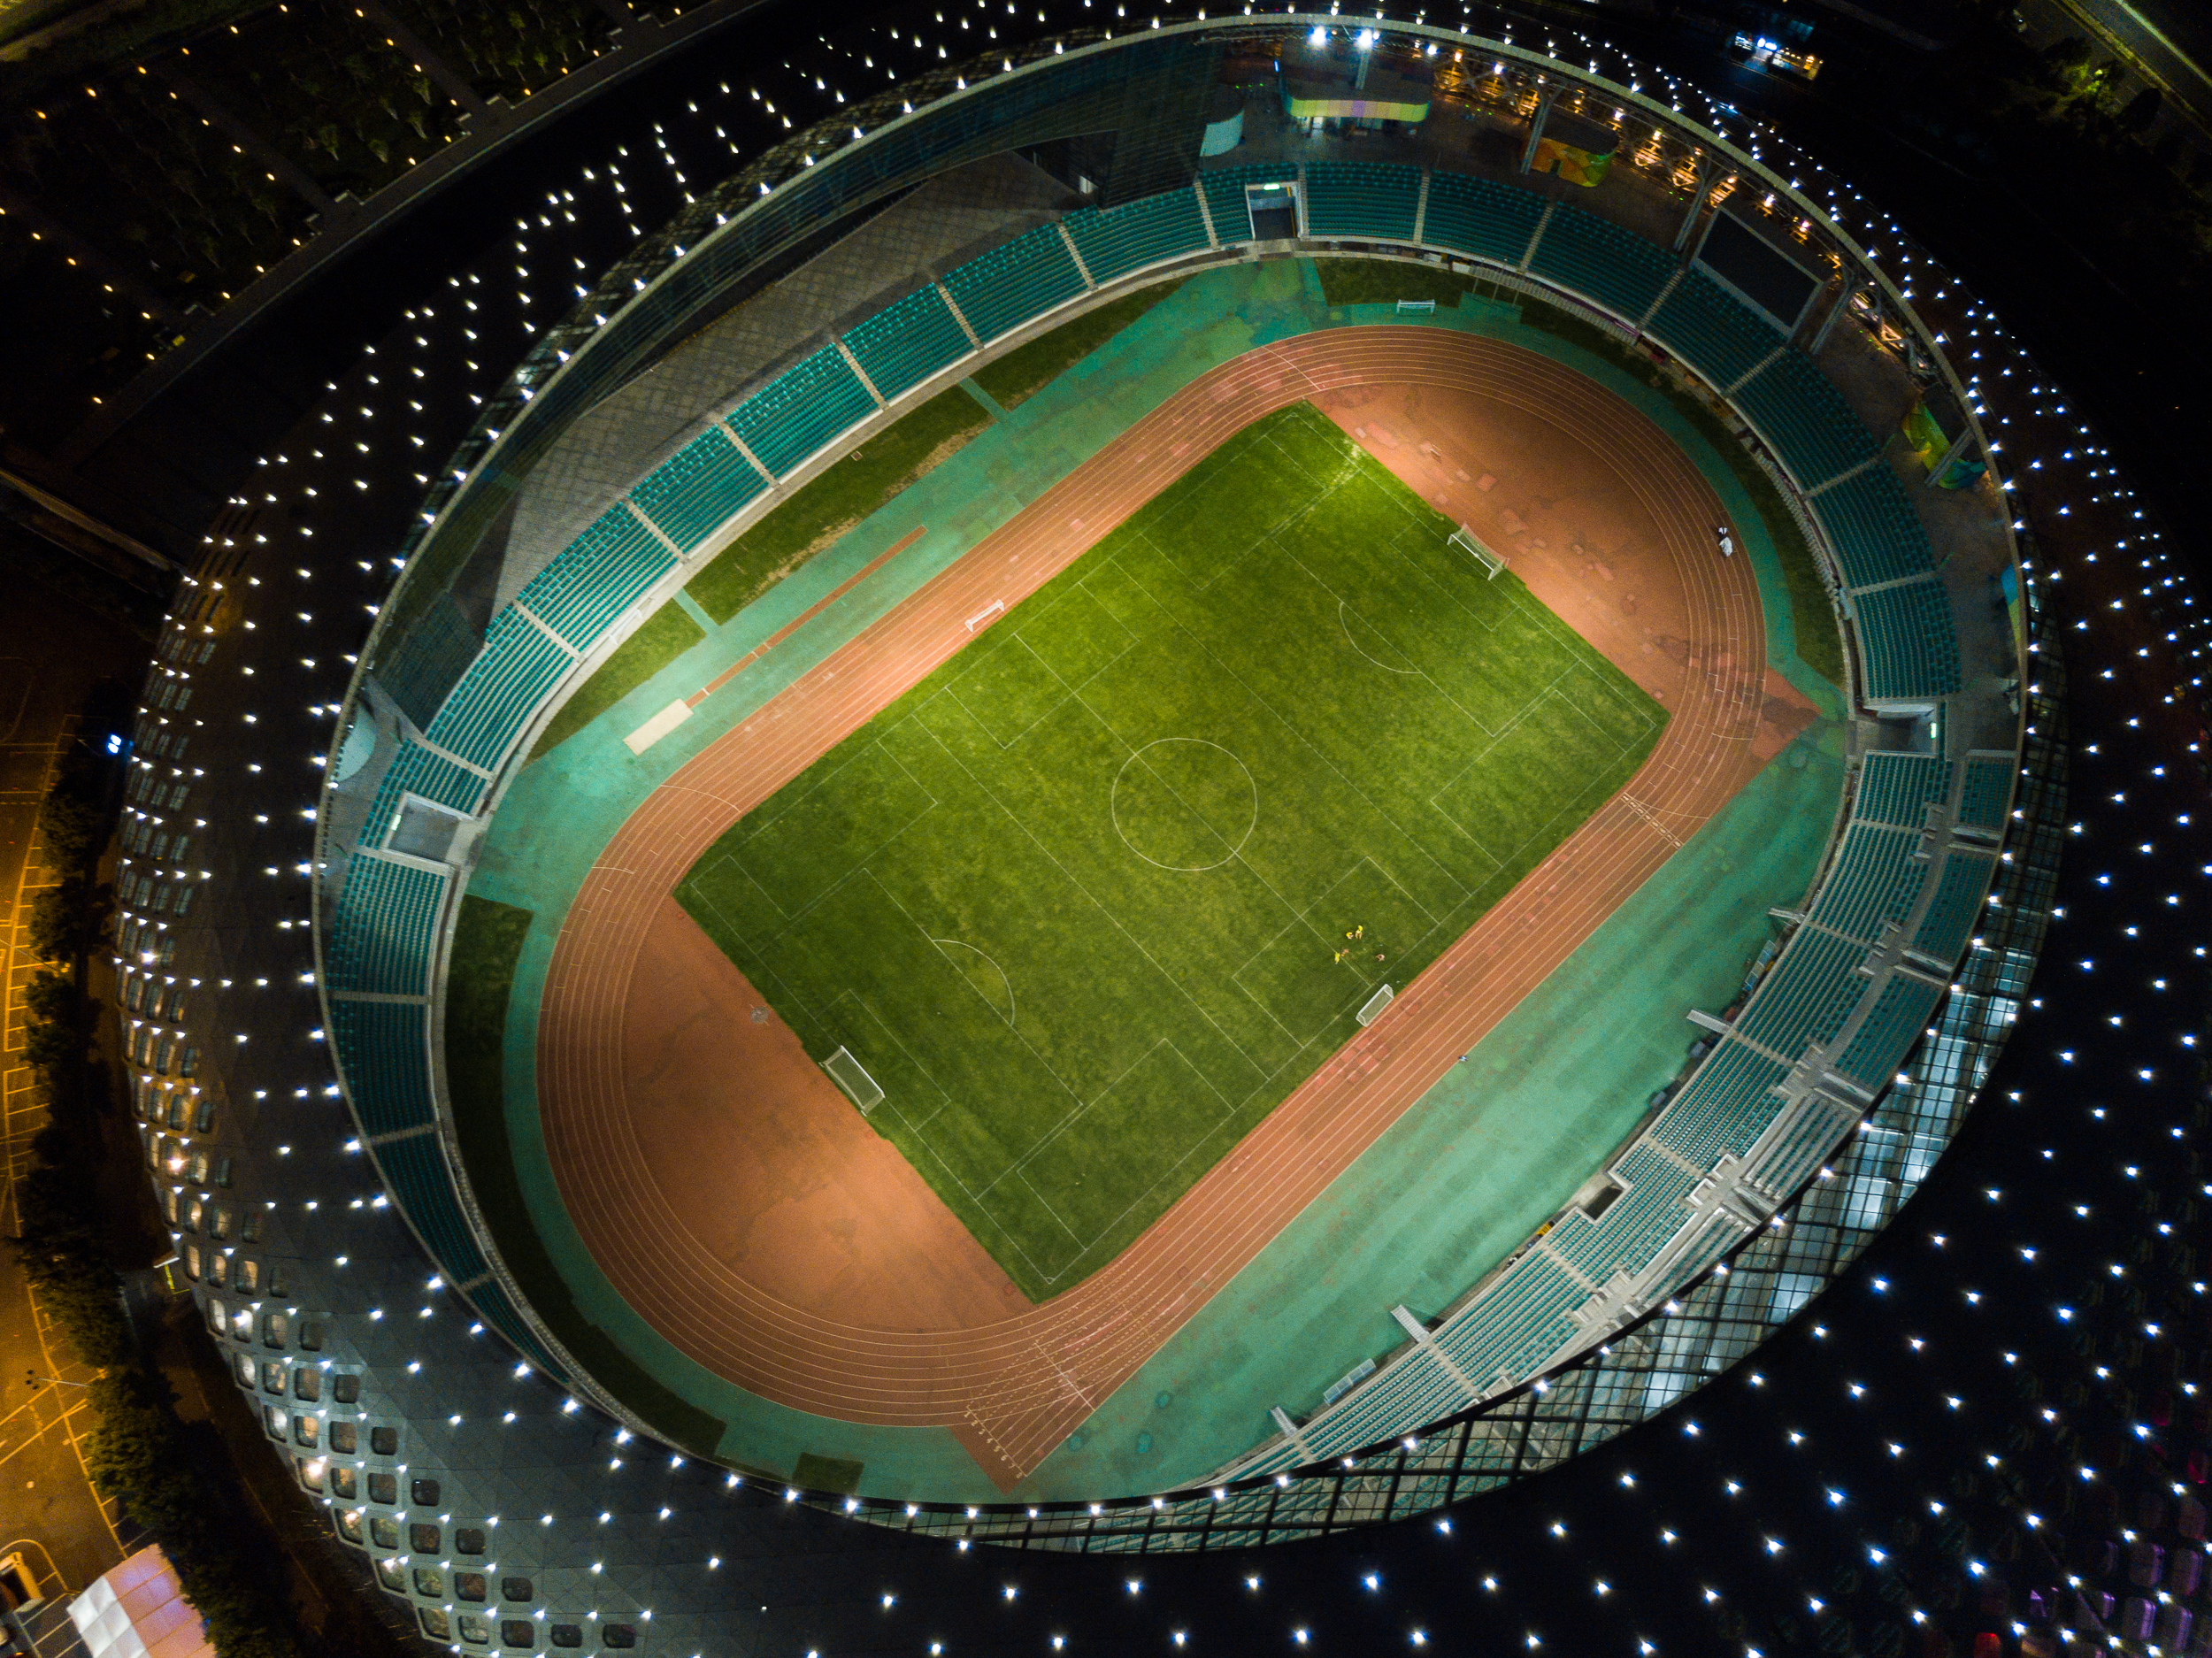 Night view of the Shenzhen Bay Sports Centre Football pitch.